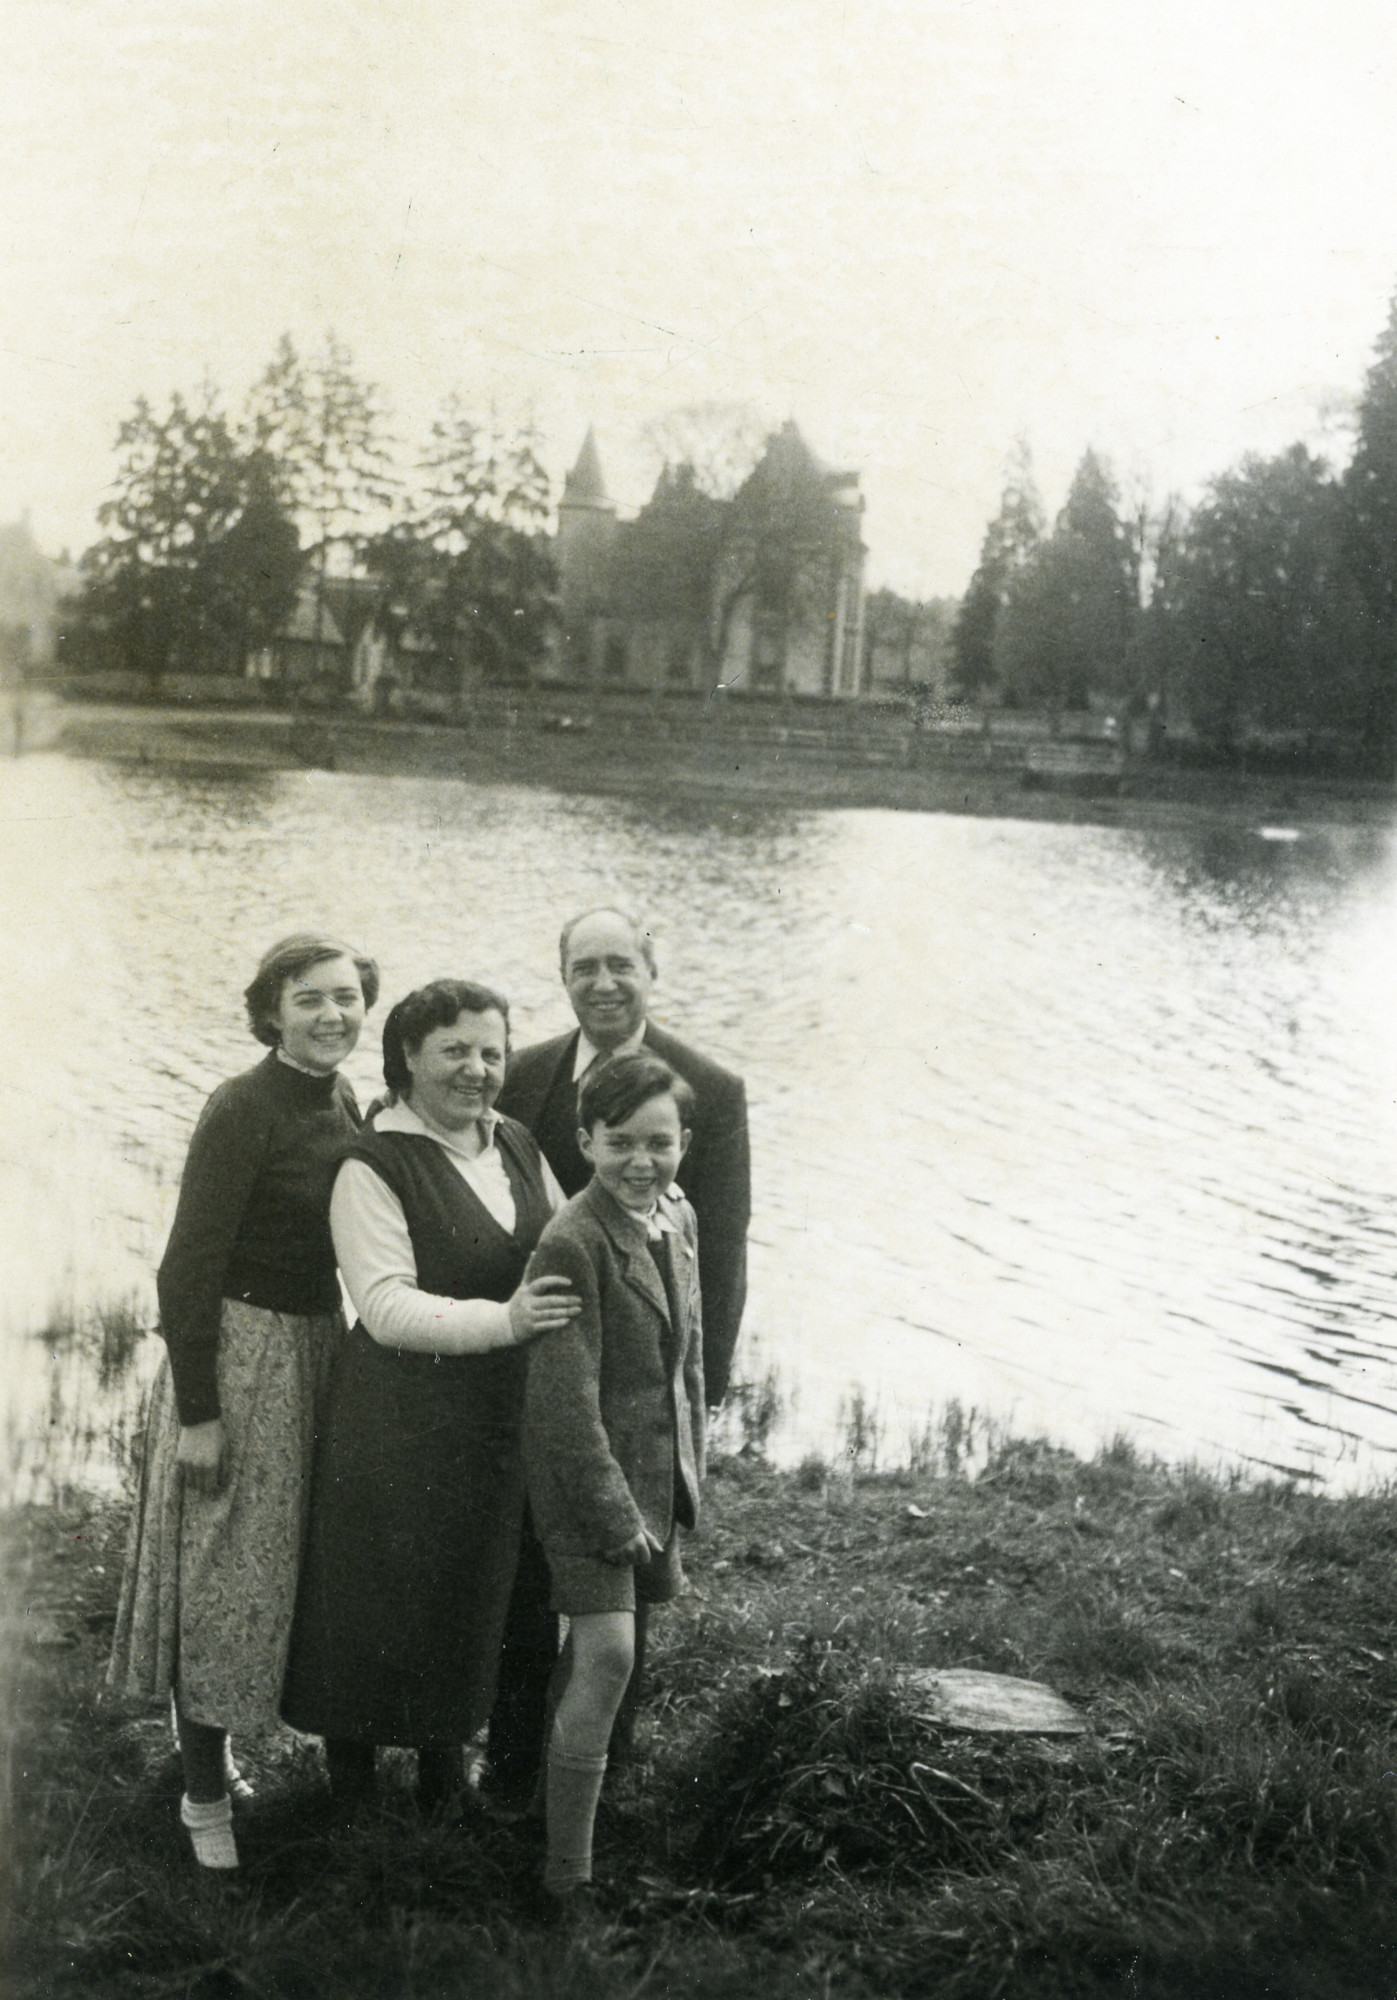 A Jewish family reunited after the war.  Pictured are Symchel and Clara Dores, and their children Mireille and Maurice.